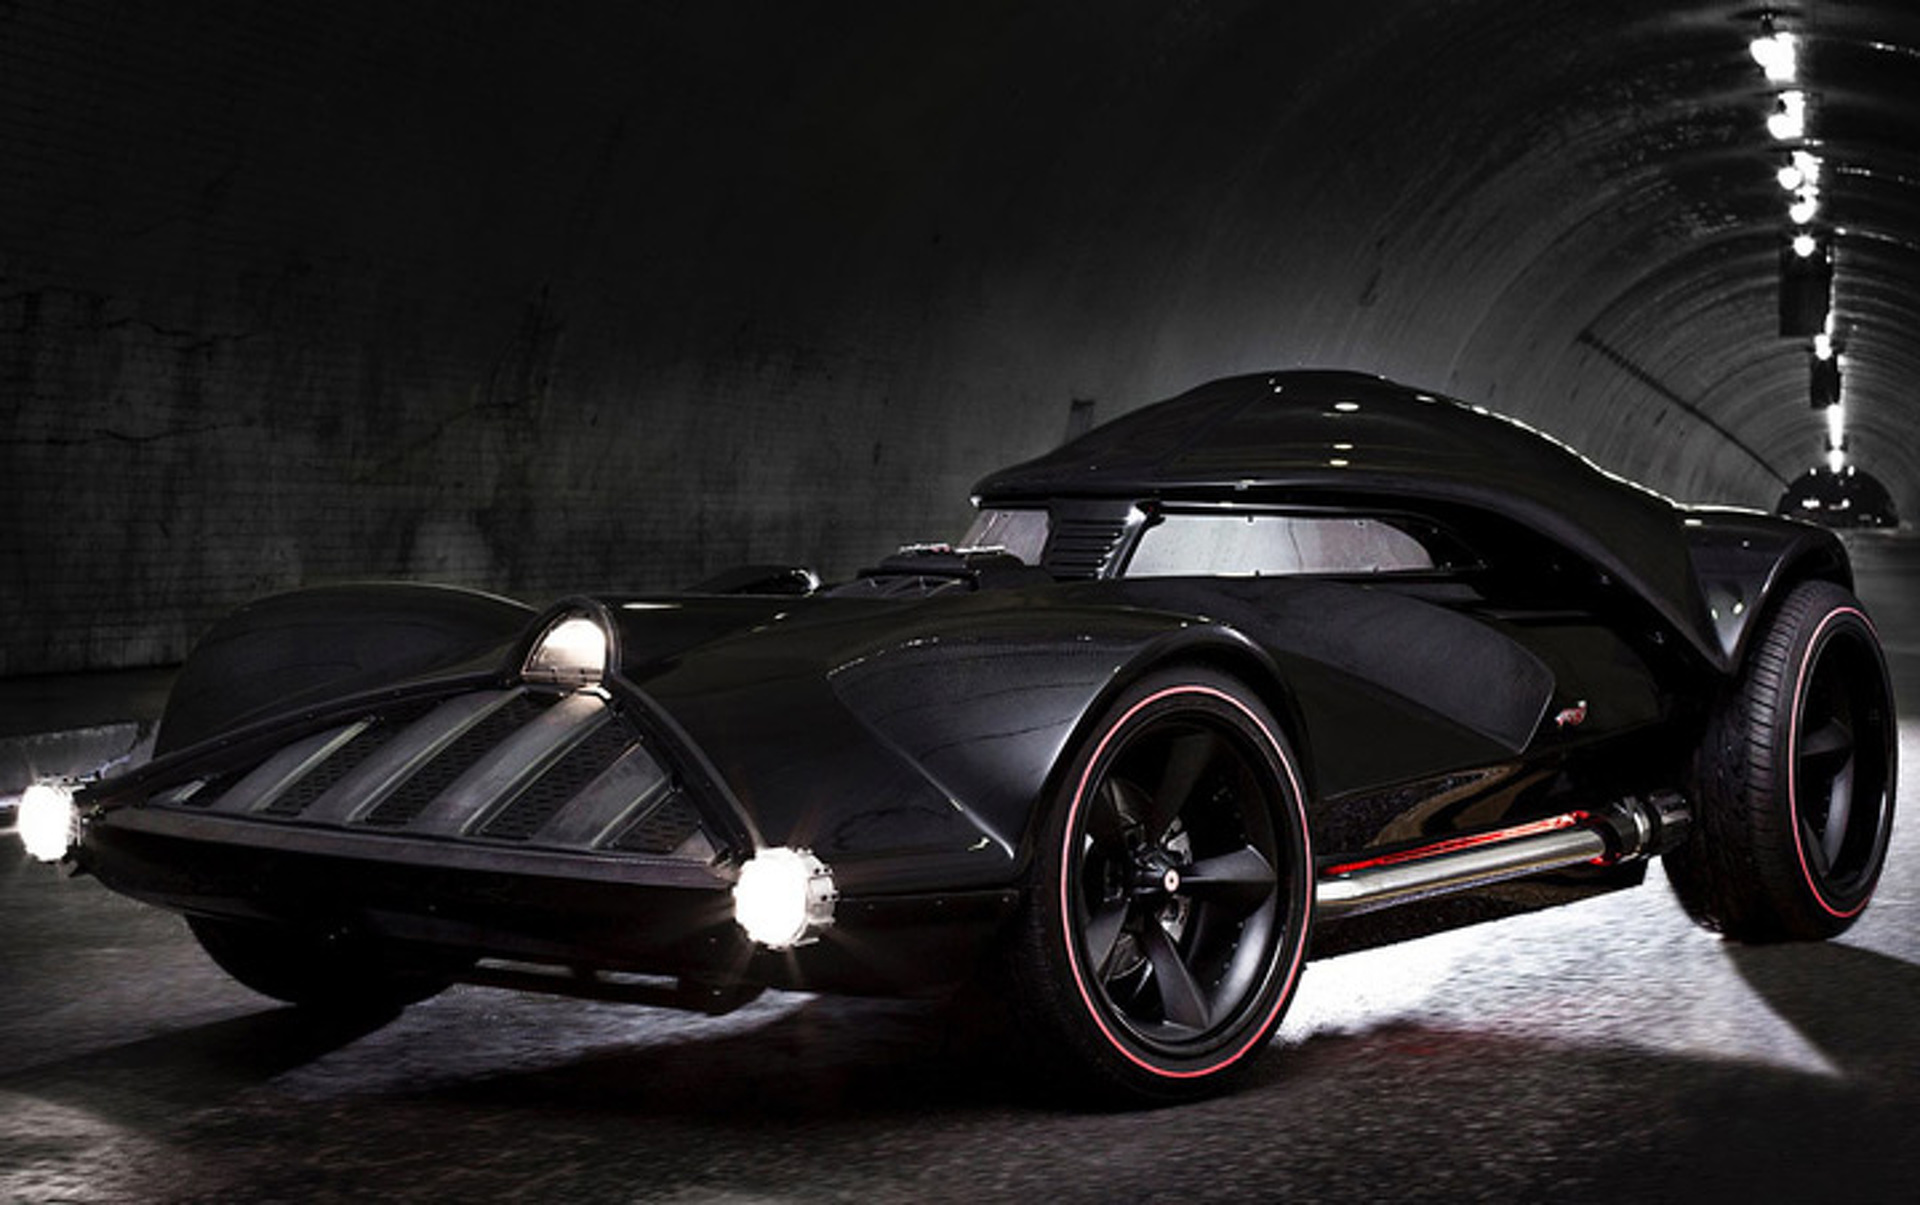 Embrace the Dark Side with this Full-Size Darth Vader Car [Video]